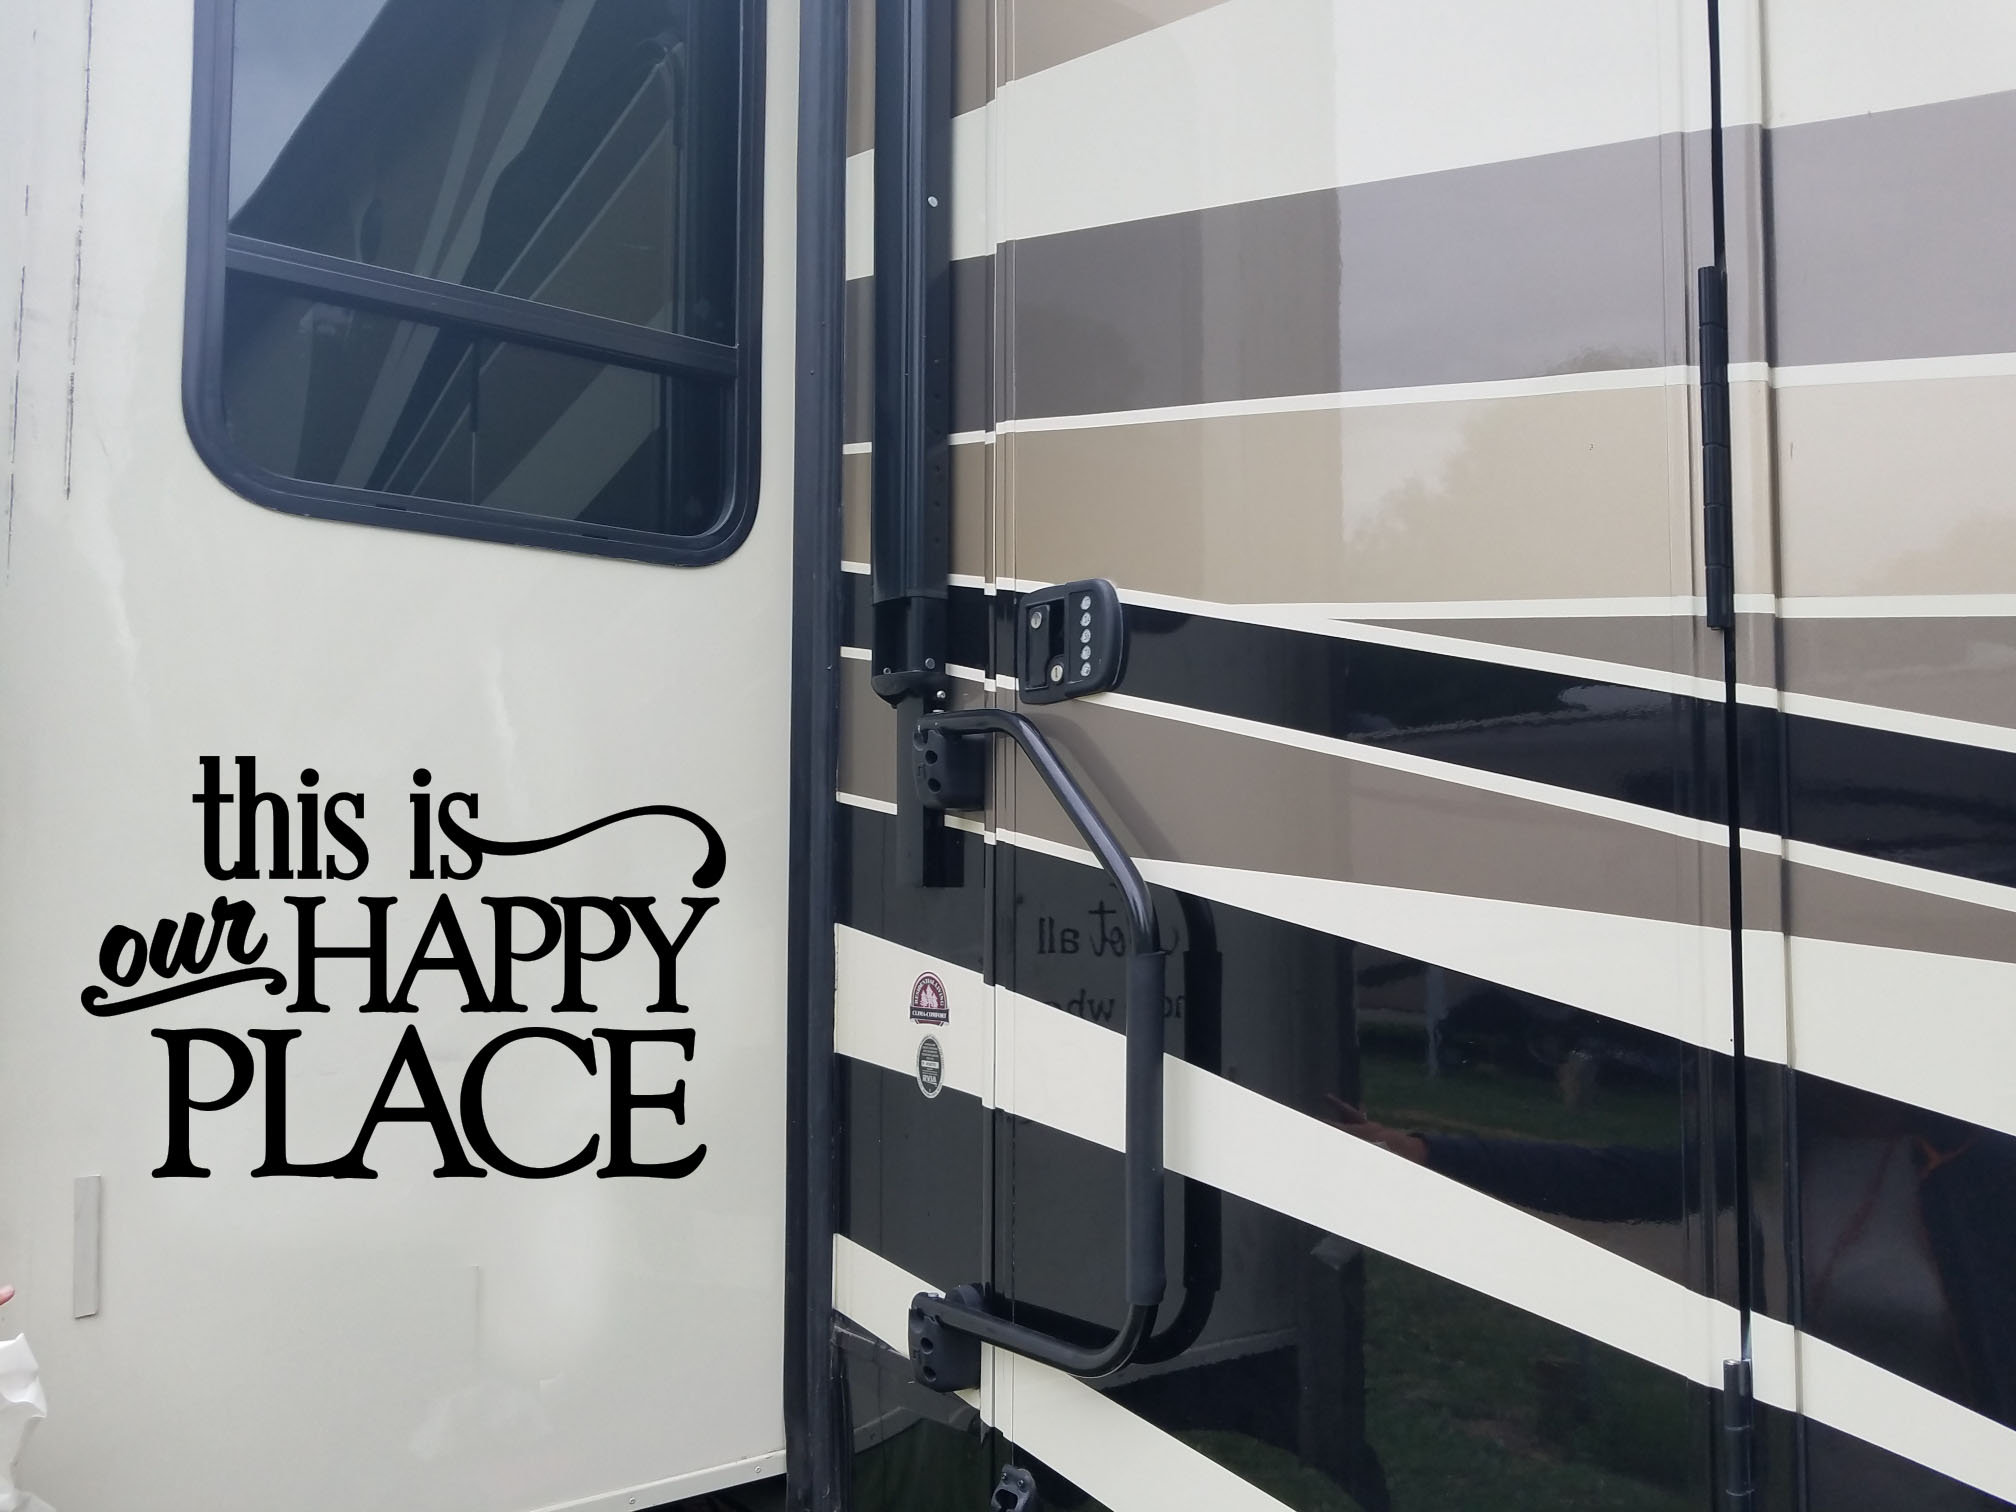 This is our happy place vinyl decal camper decal rv vinyl decal sticker camper decor trailer sticker vinyl lettering decal